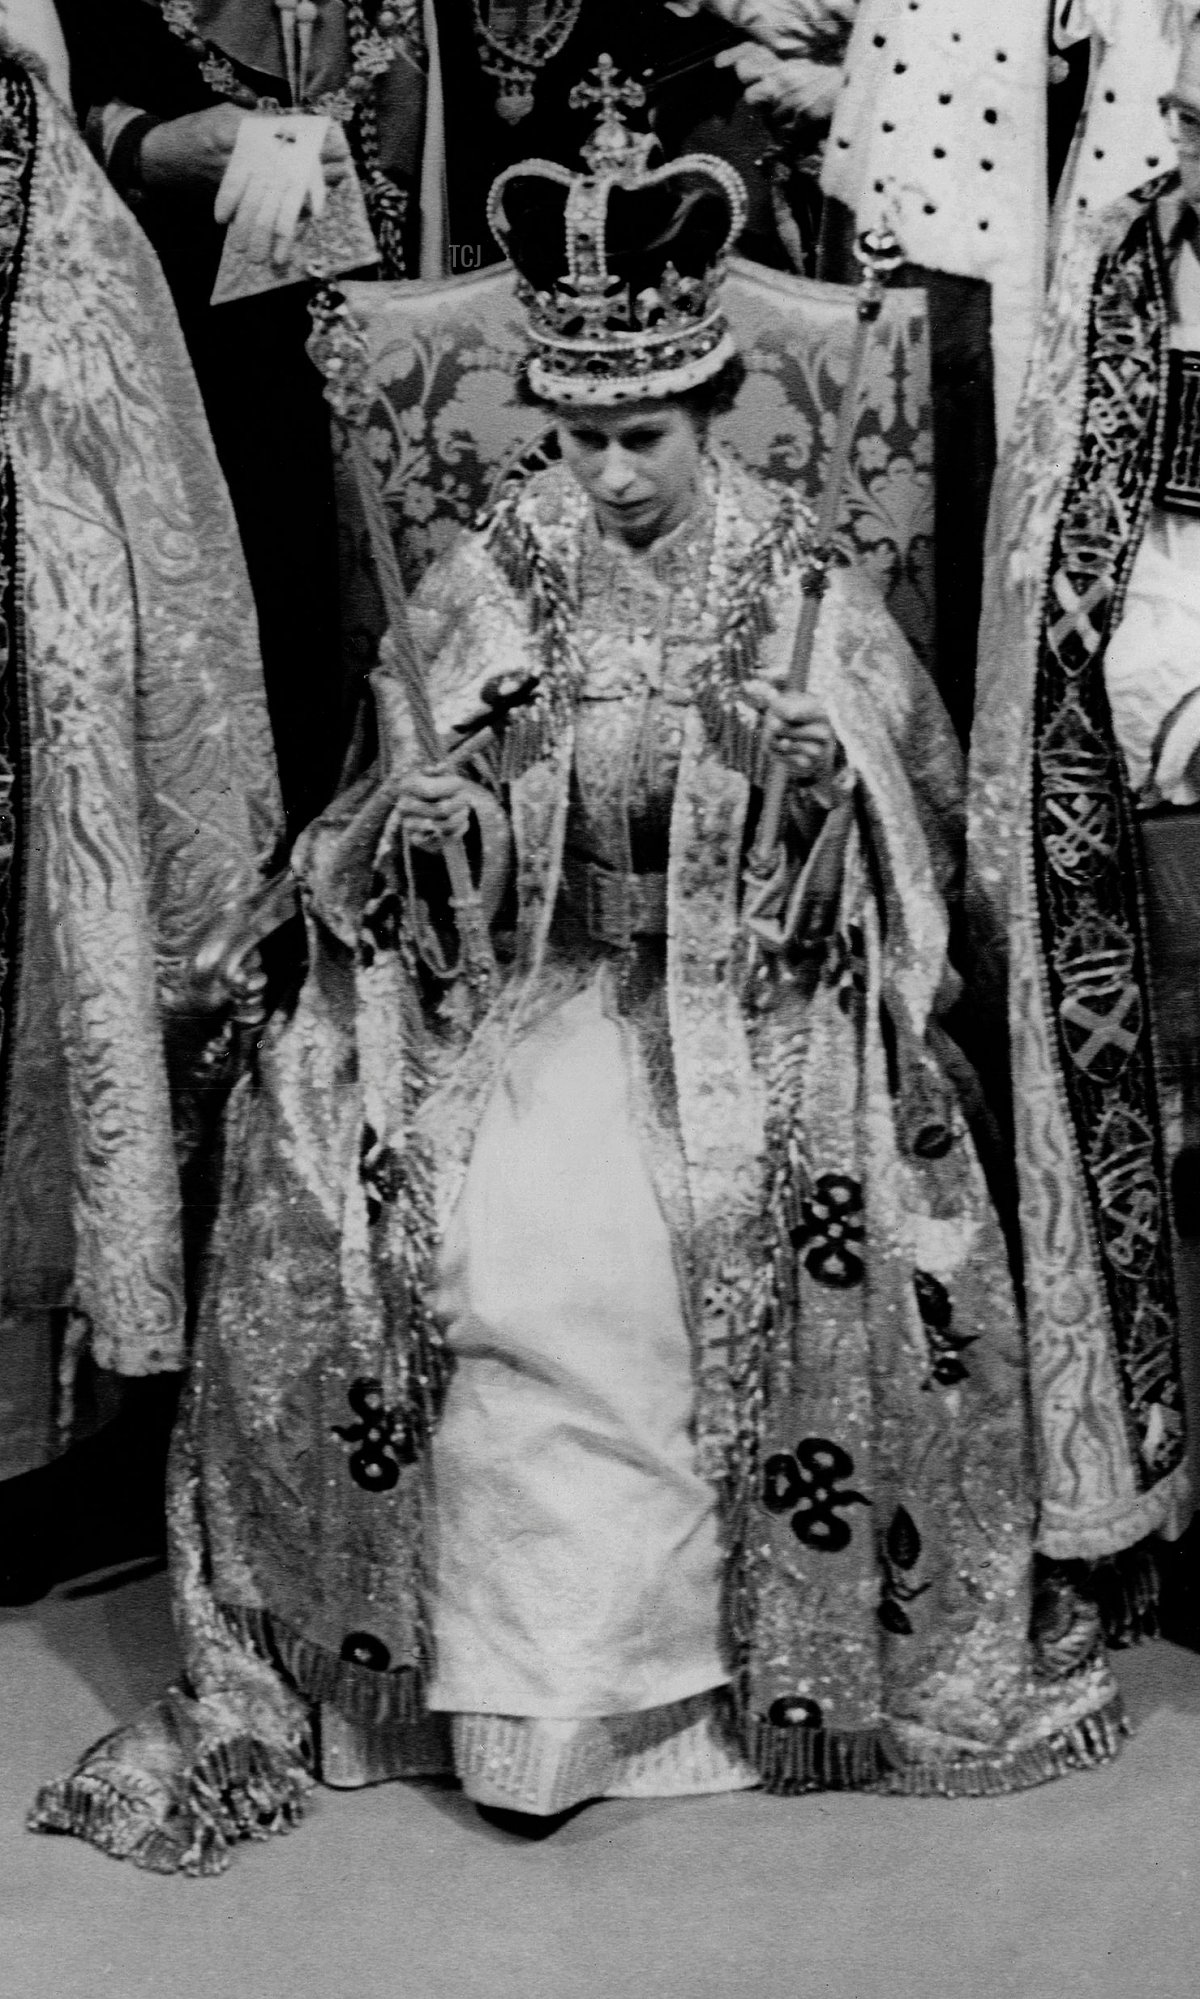 Picture taken on June 2, 1953 at London showing a moment of the coronation of Queen Elizabeth II in Westminster Abbey